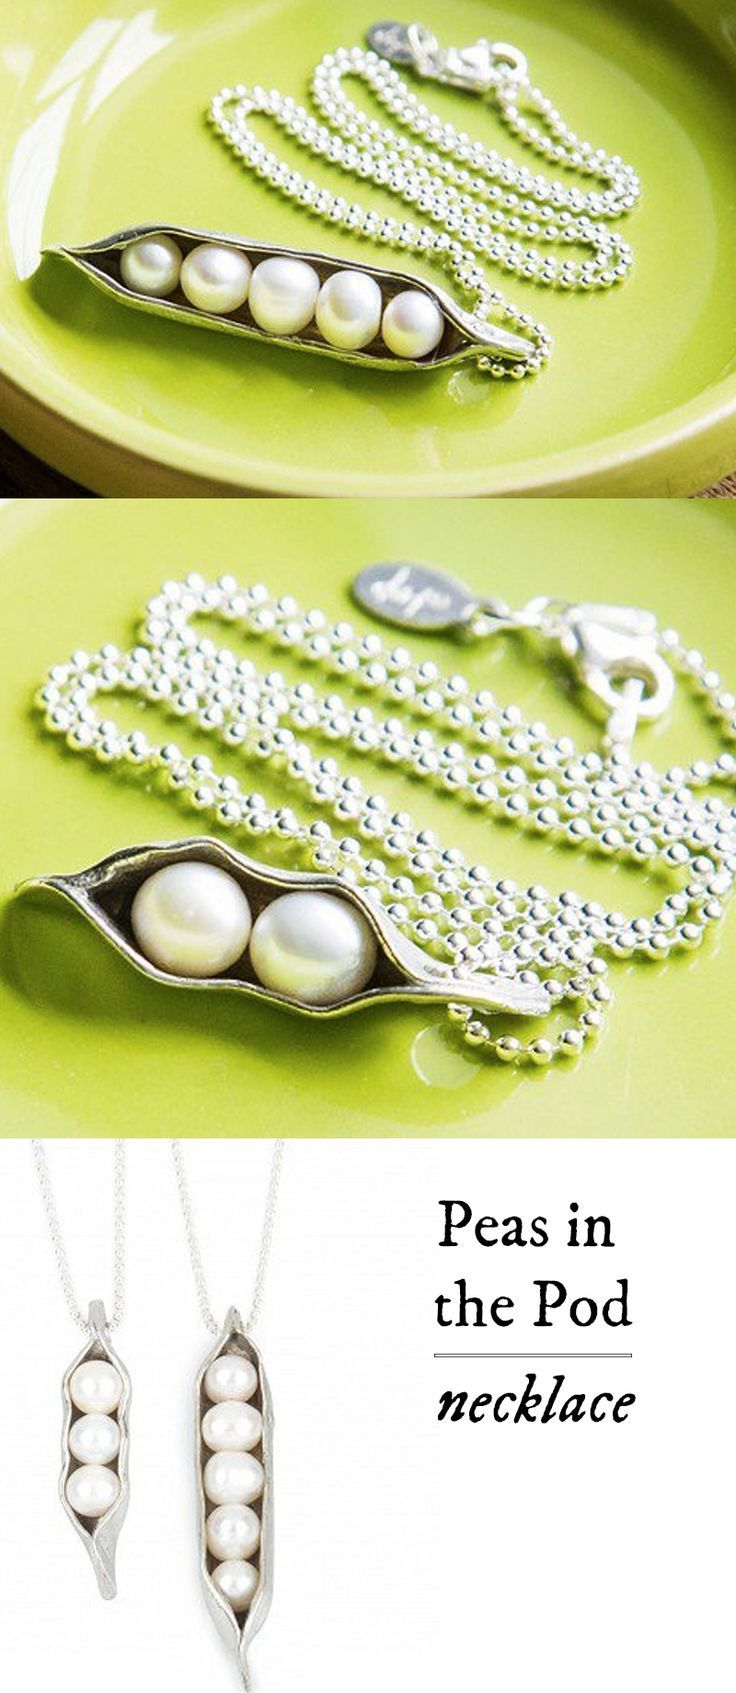 Peas in a pod necklace pictures photos and images for for Peas in a pod craft